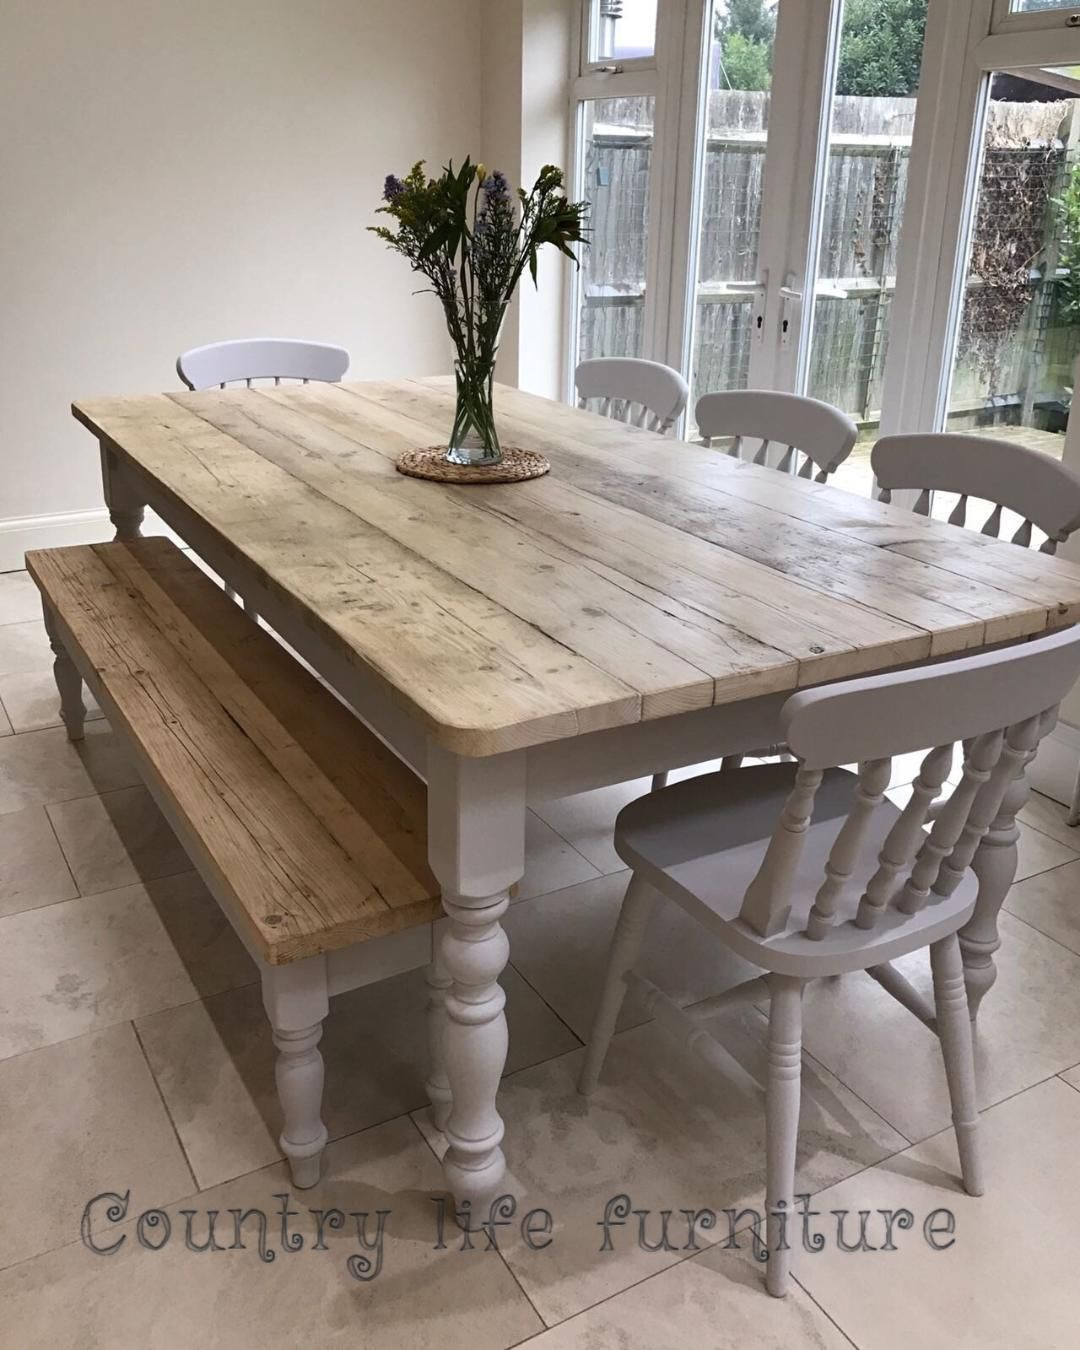 Beautiful Handmade Farmhouse Tables Bespoke Sizes Colours In The